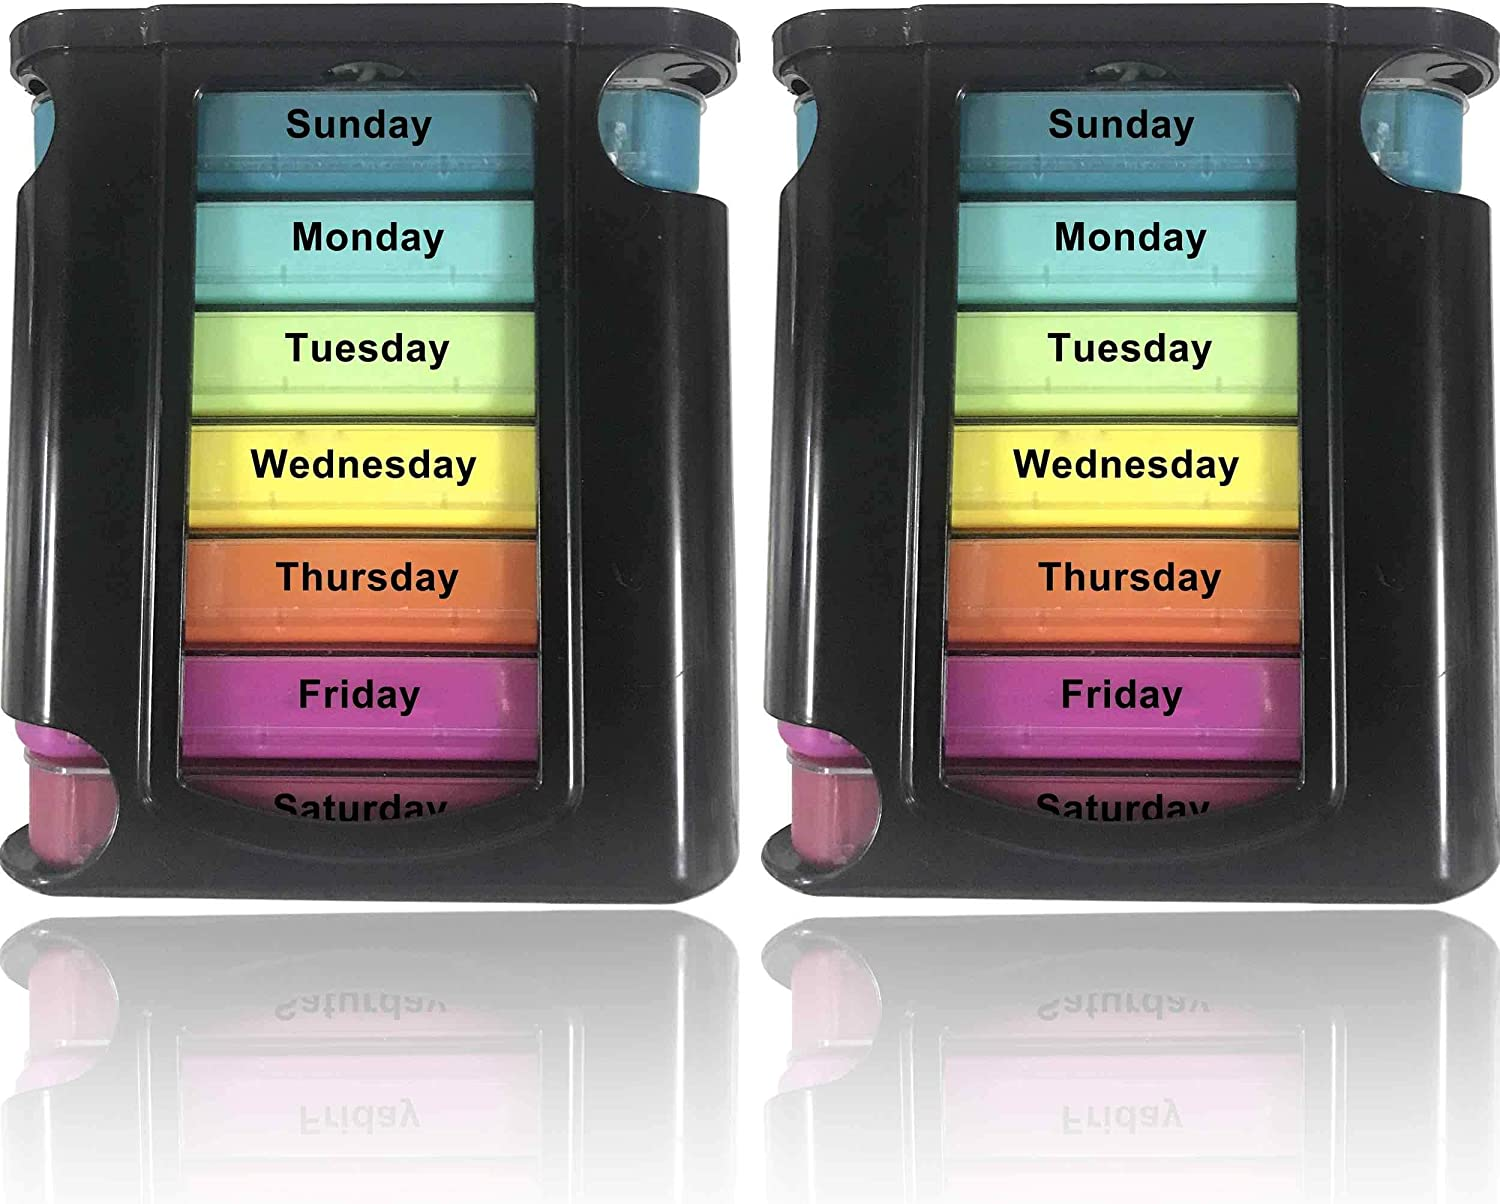 Stackable Excellence Daily Pill Organizer free - 2 Pack Times Day 4 Weekly a Me